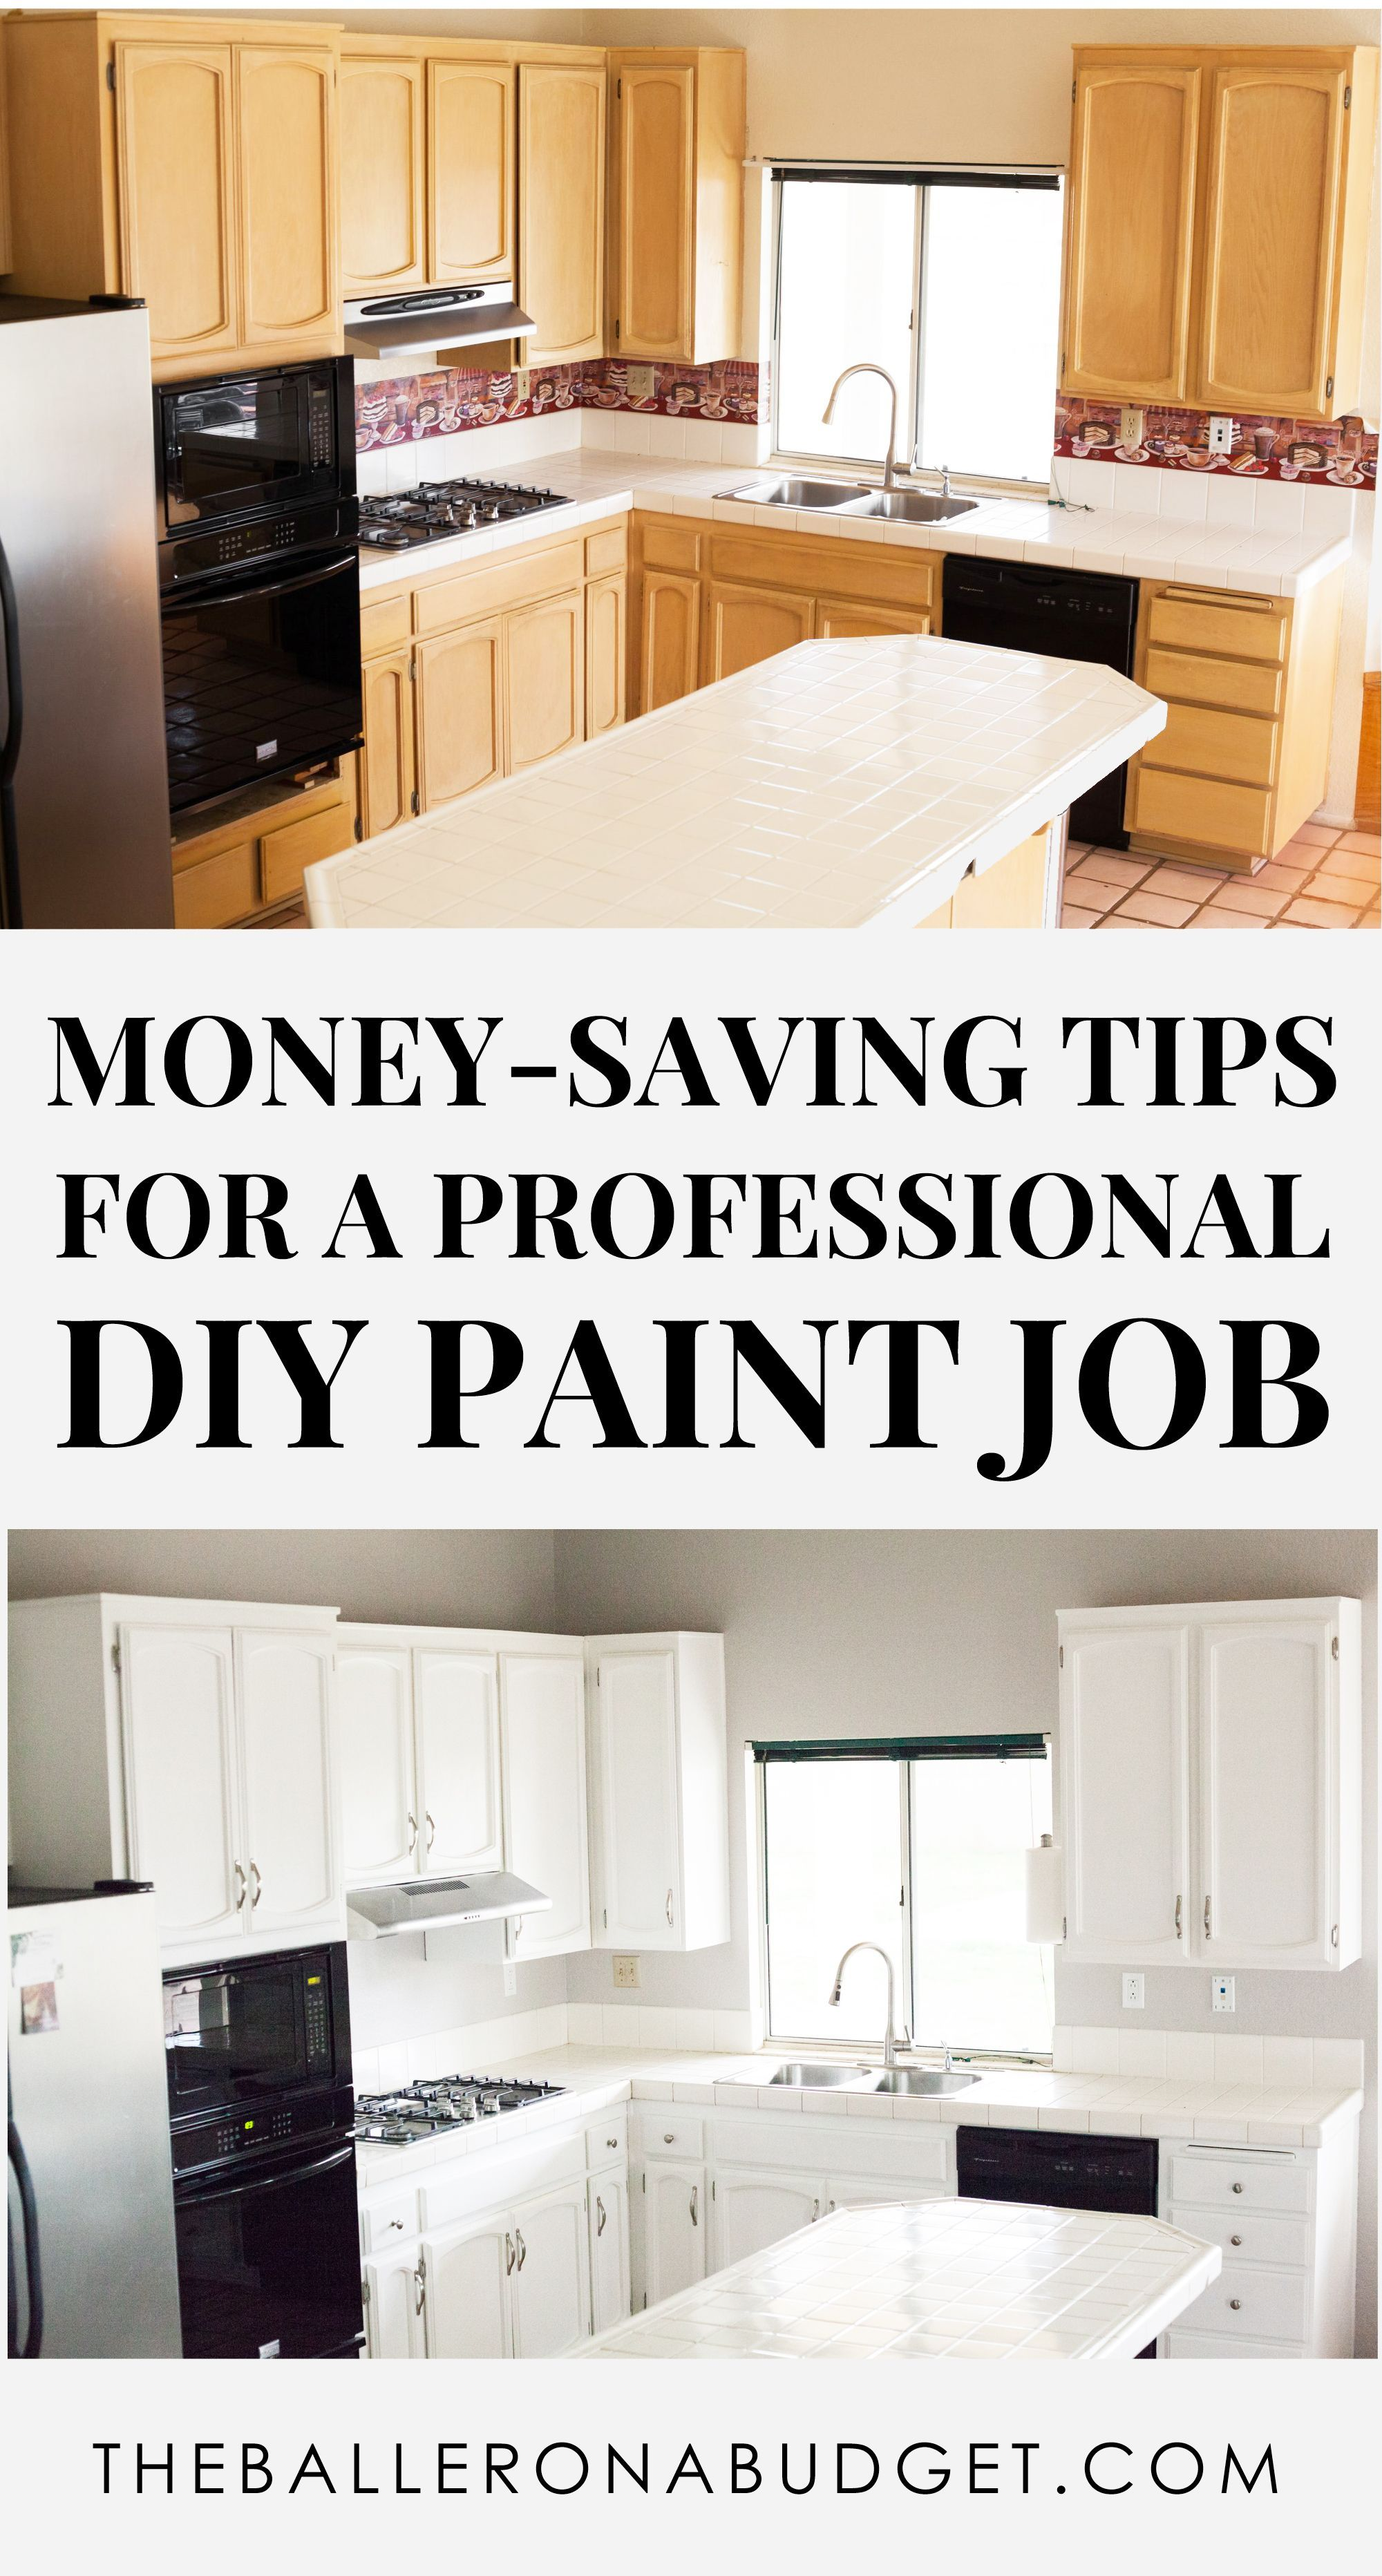 Expensive Or Cheap Paint For My Walls Hire Painters Or Do It Myself What Kind Of Brushes Do I Need Diy Kitchen Renovation Cheap Kitchen Cabinets Diy Kitchen